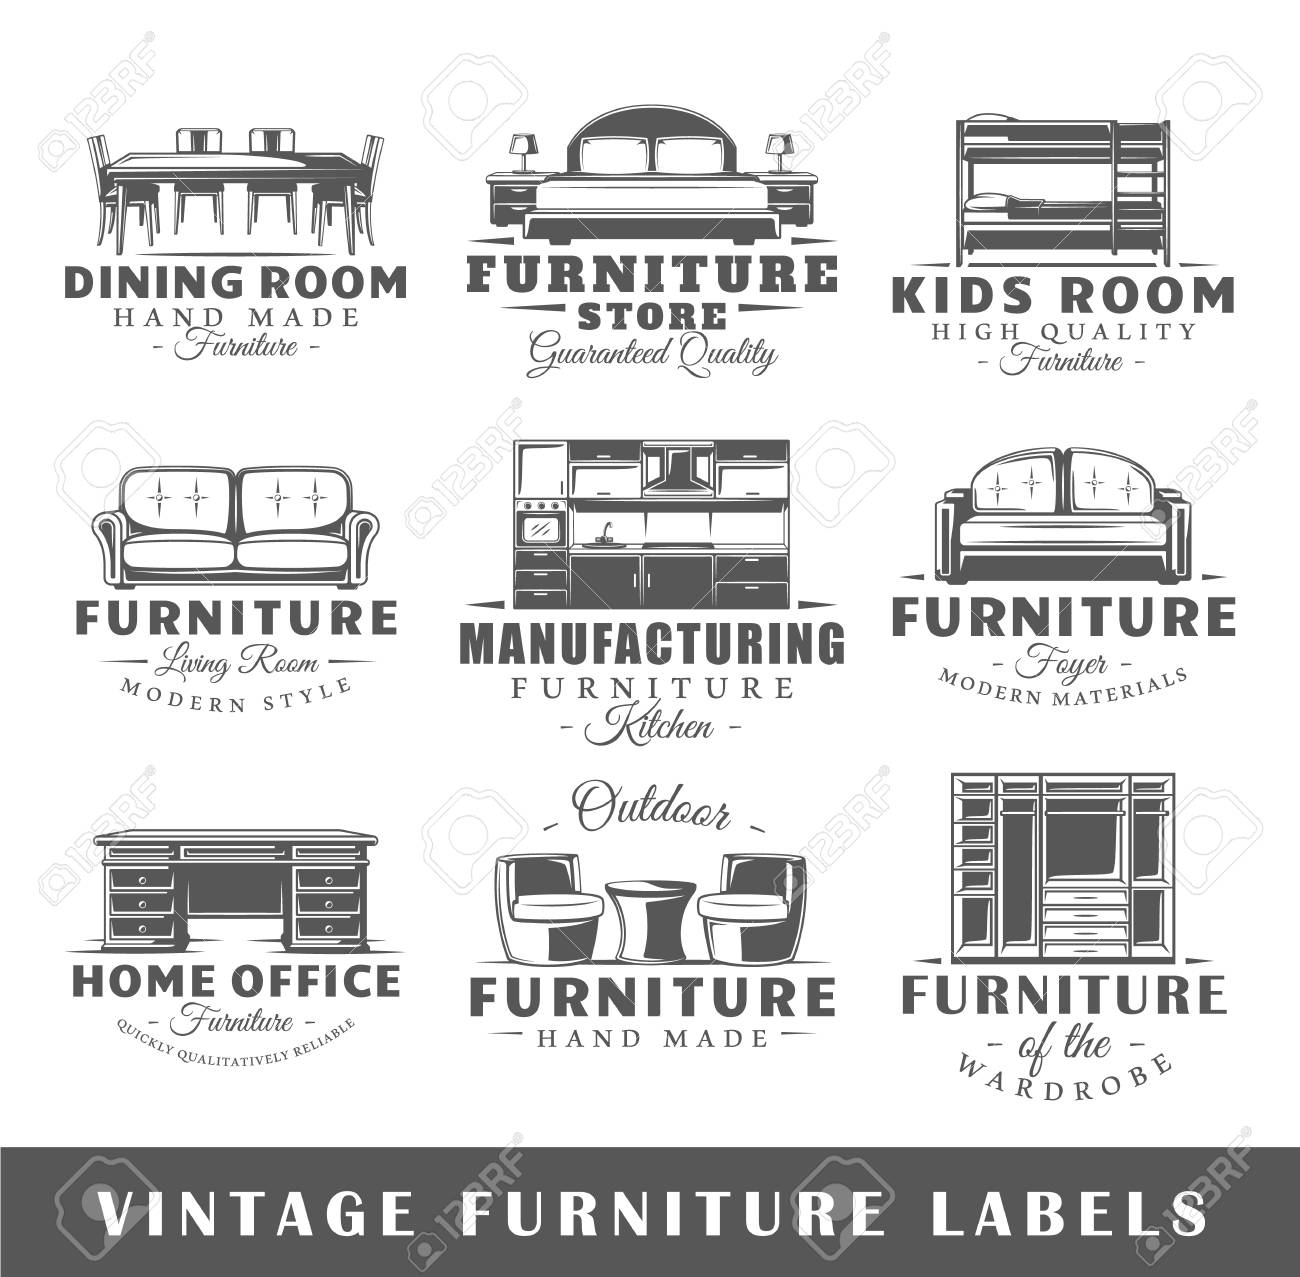 Vintage furniture logo Factory Set Of Vintage Furniture Labels Templates For The Design Of Logos And Emblems Collection Otterruninfo Set Of Vintage Furniture Labels Templates For The Design Of